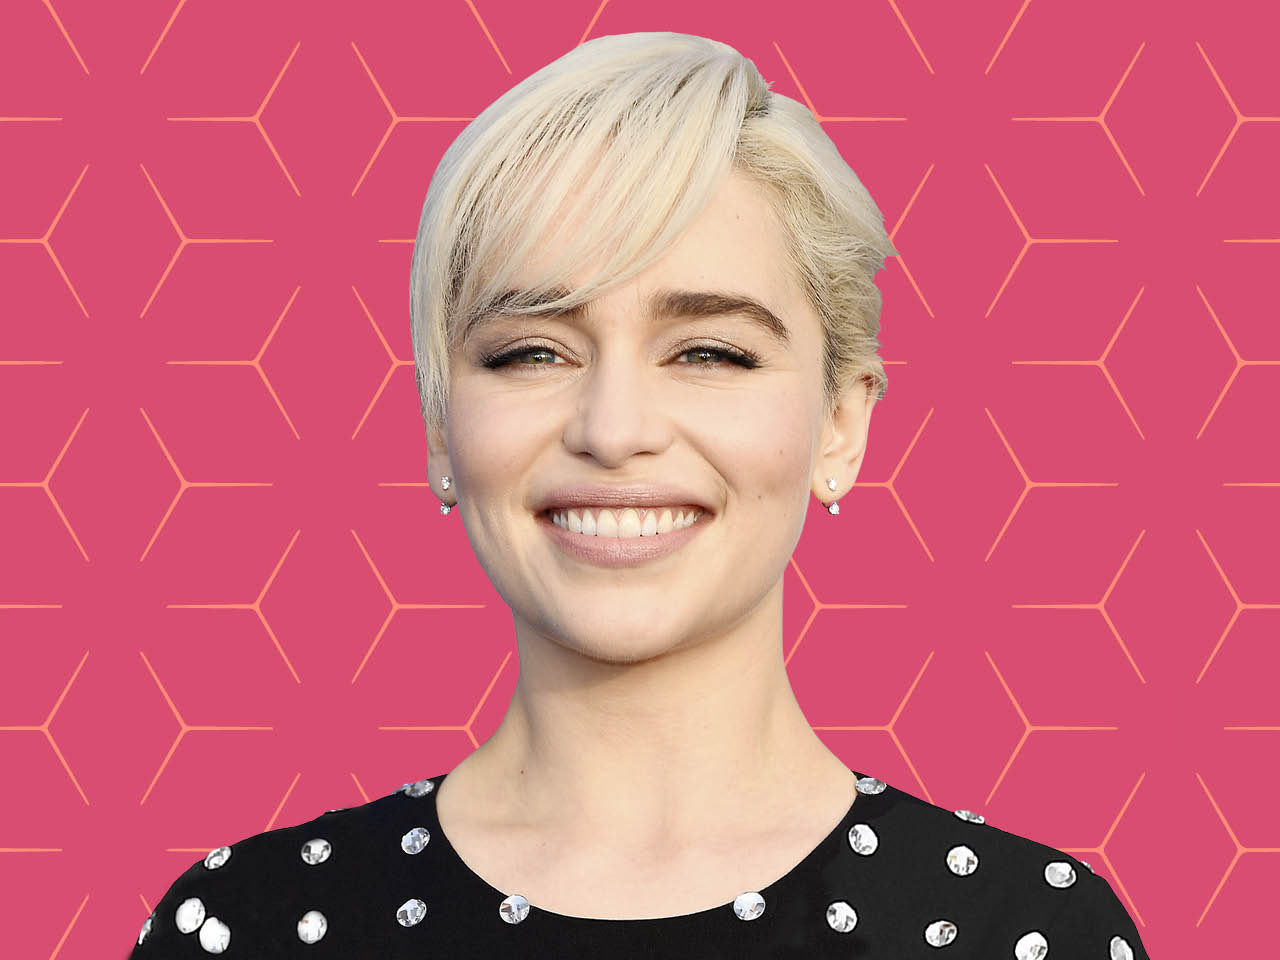 Emilia Clarke is one of the many celebrities with bangs